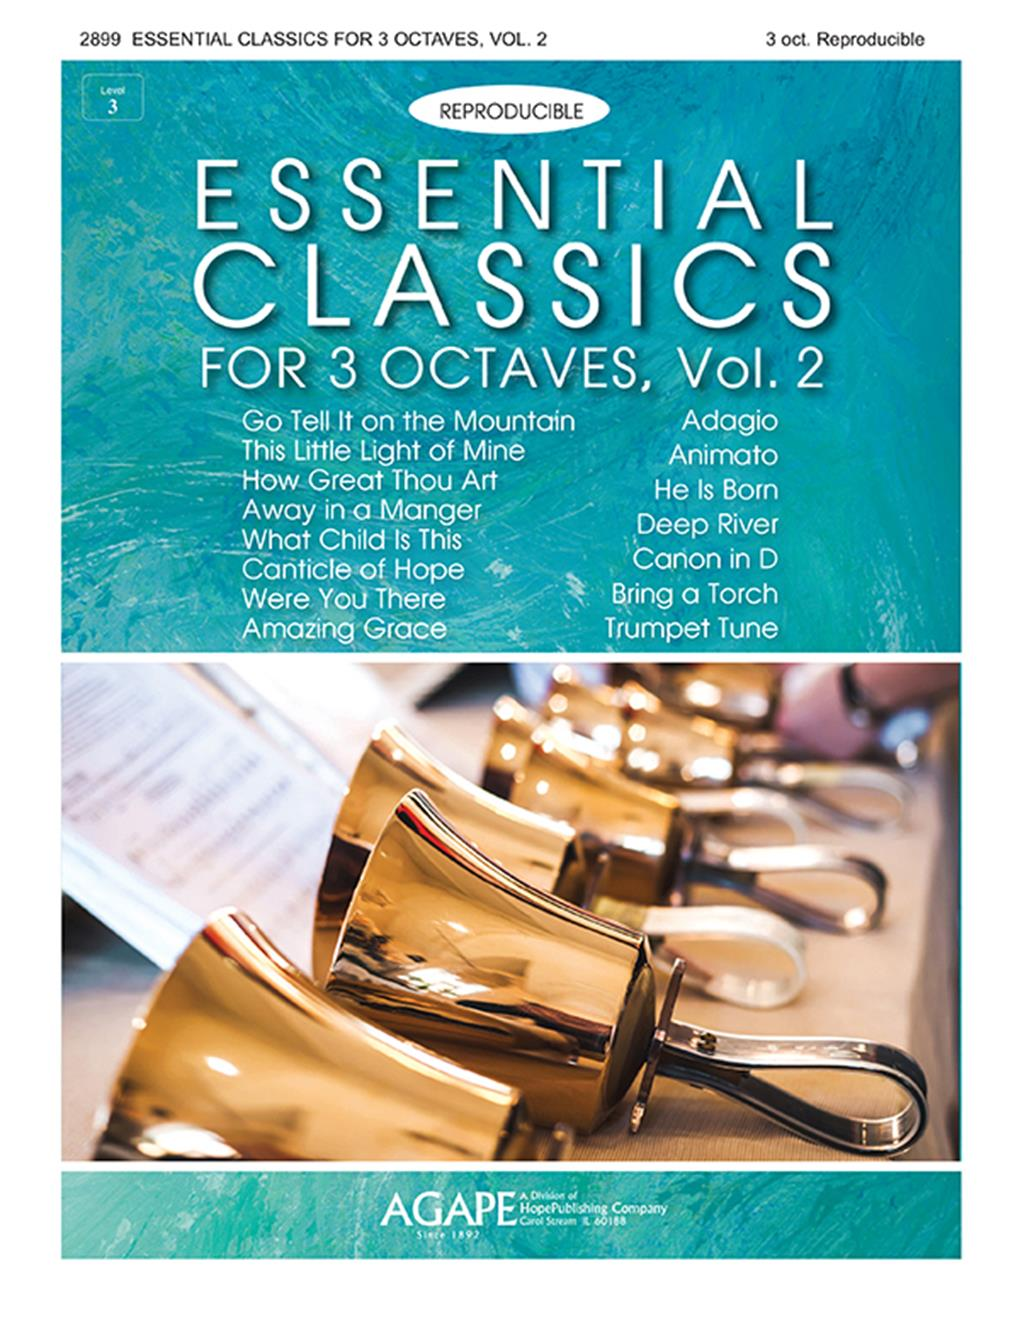 Essential Classics for 3 Octaves Vol. 2 (Reproducible) Cover Image